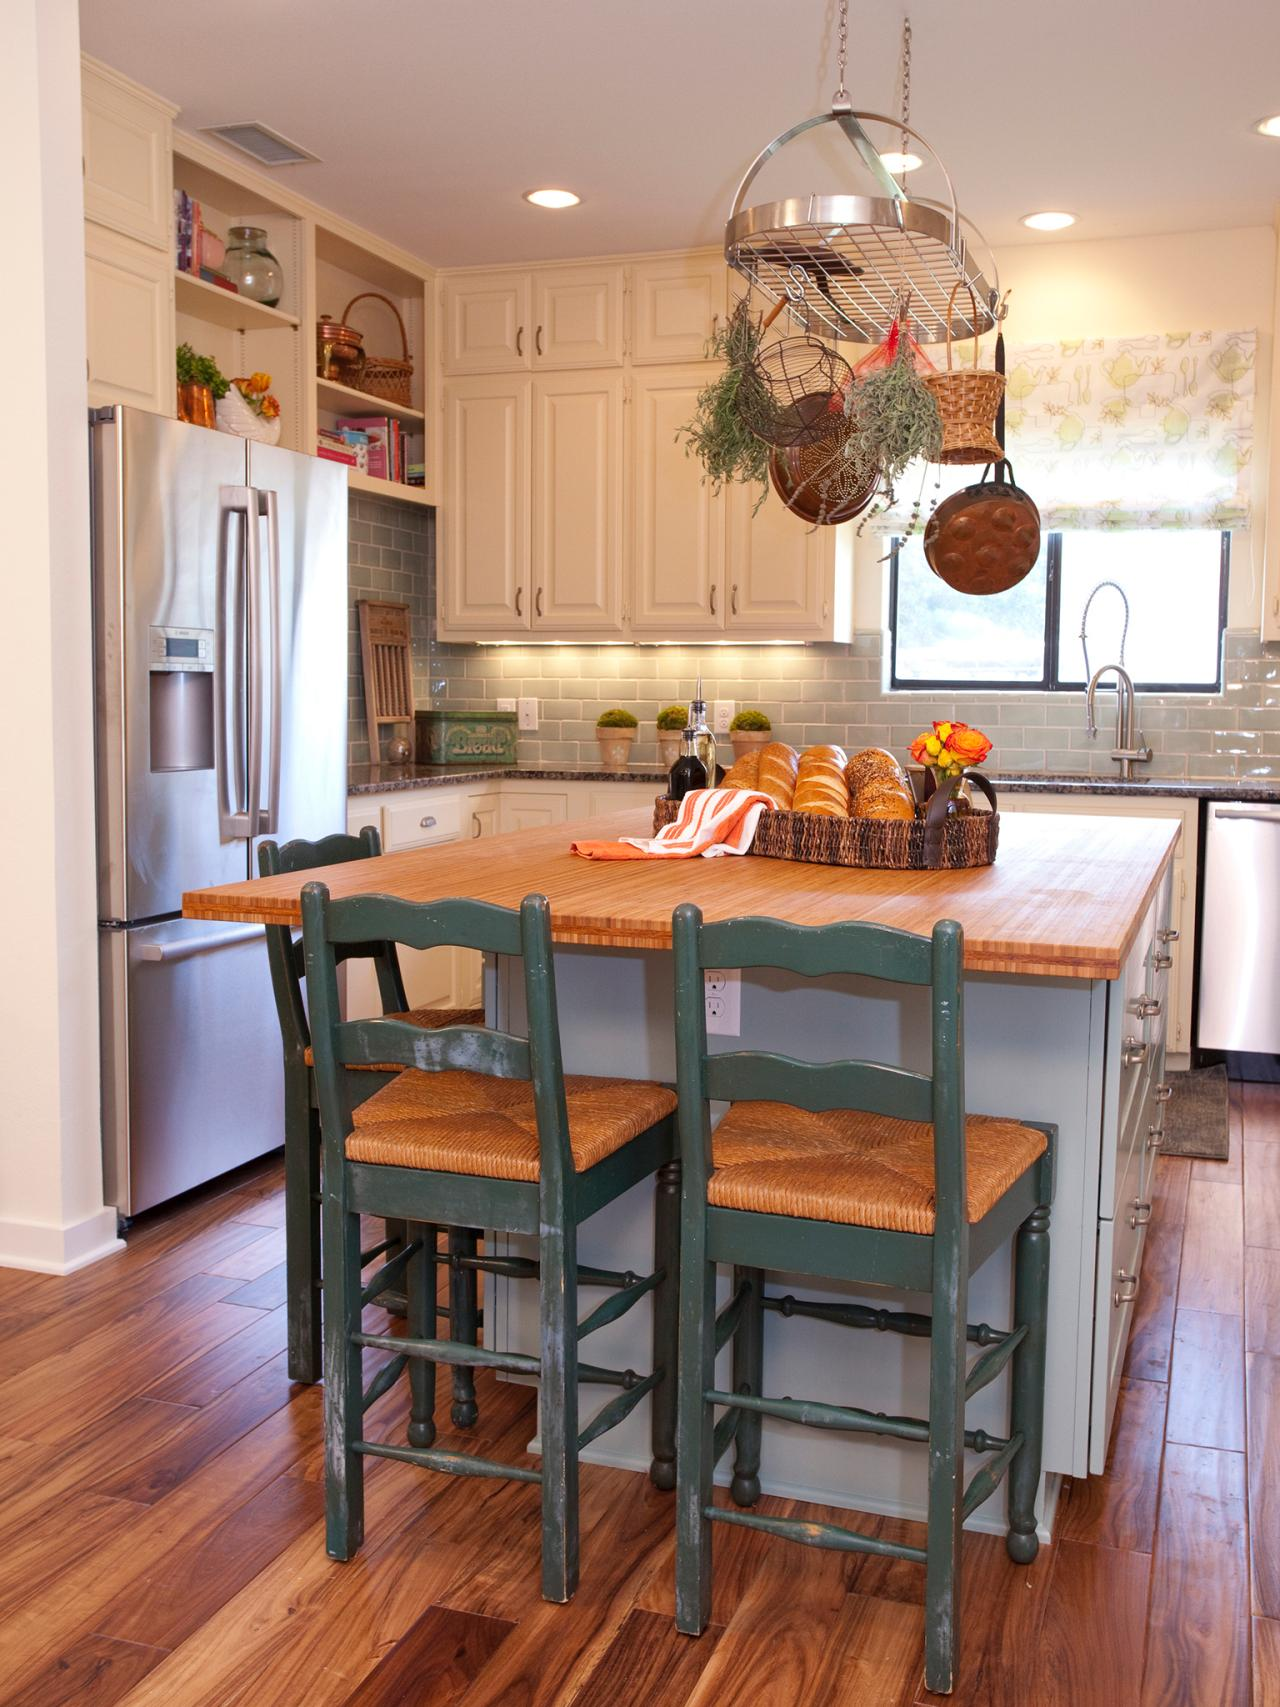 Small Modern Kitchen Island - Tags